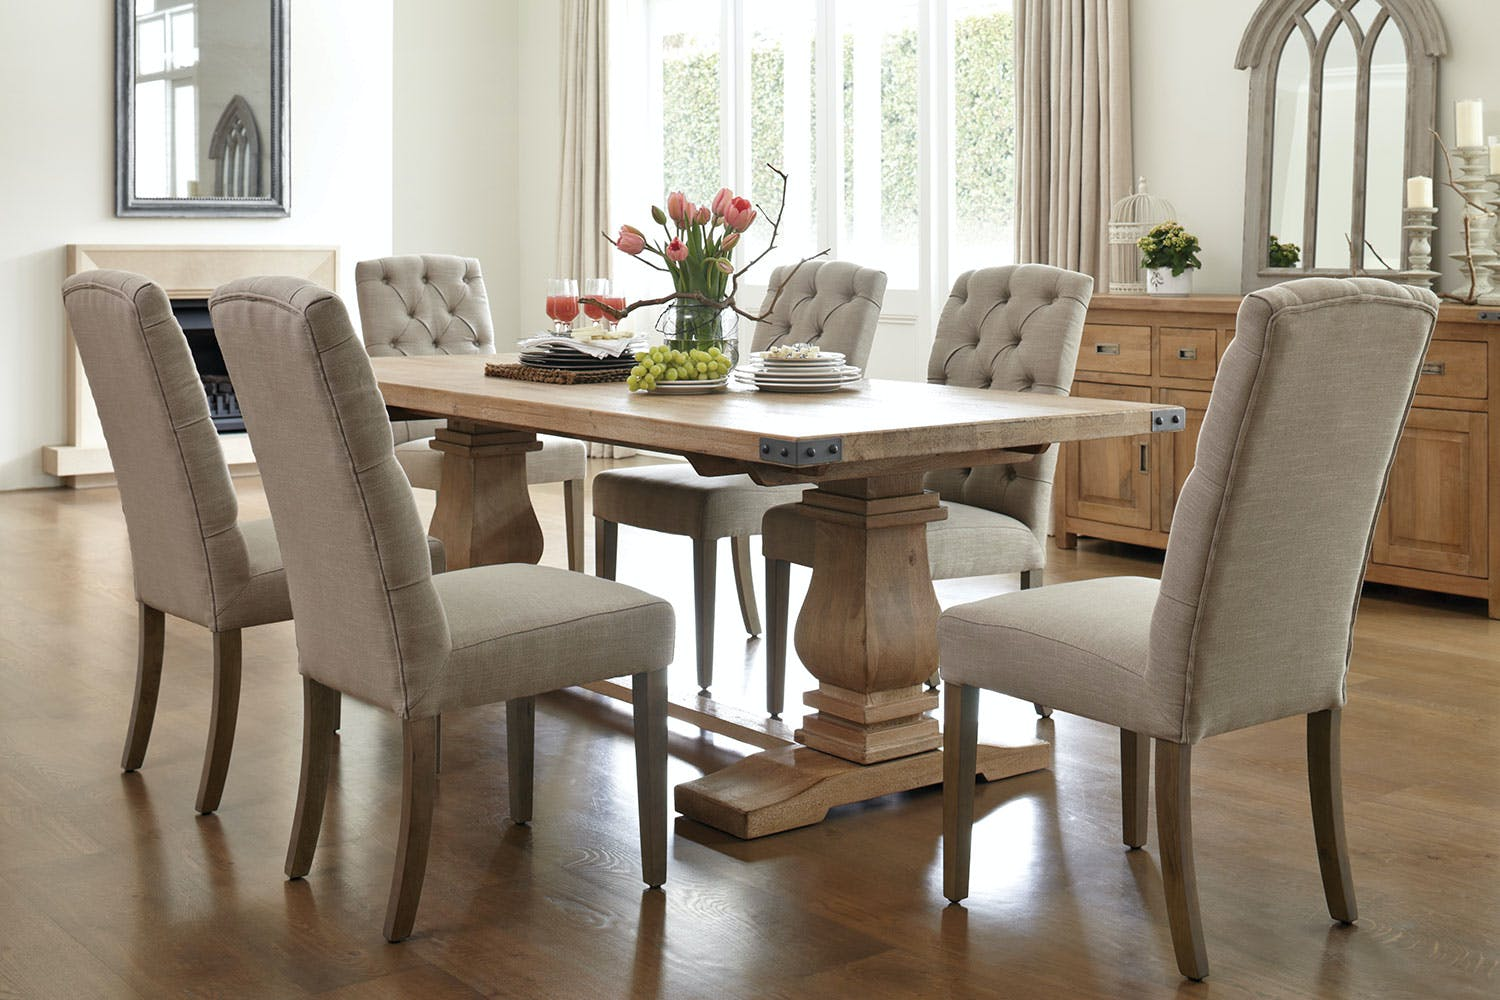 Utah 7 piece dining suite by vivin harvey norman new zealand for Dining room tables harvey norman